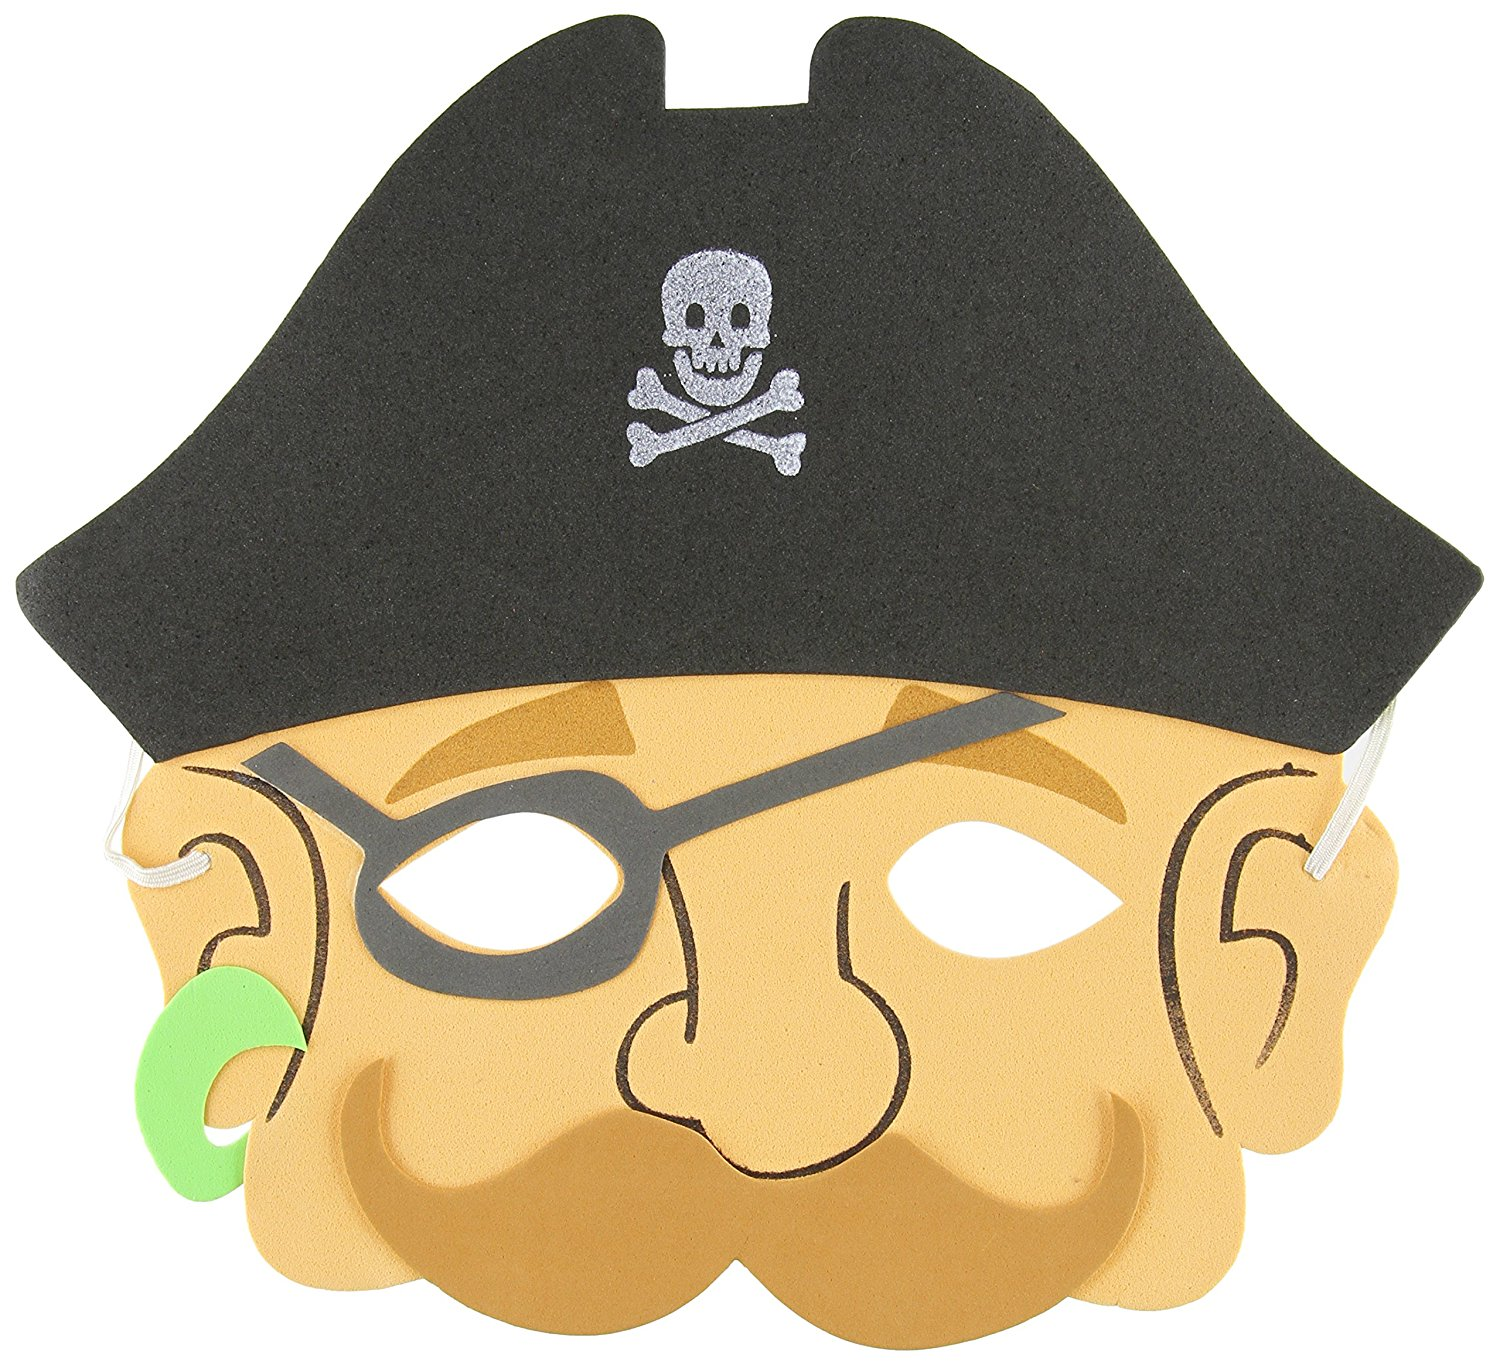 Foam Pirate Masks, 12-Pack, 12 assorted pirate masks By Rhode Island Novelty